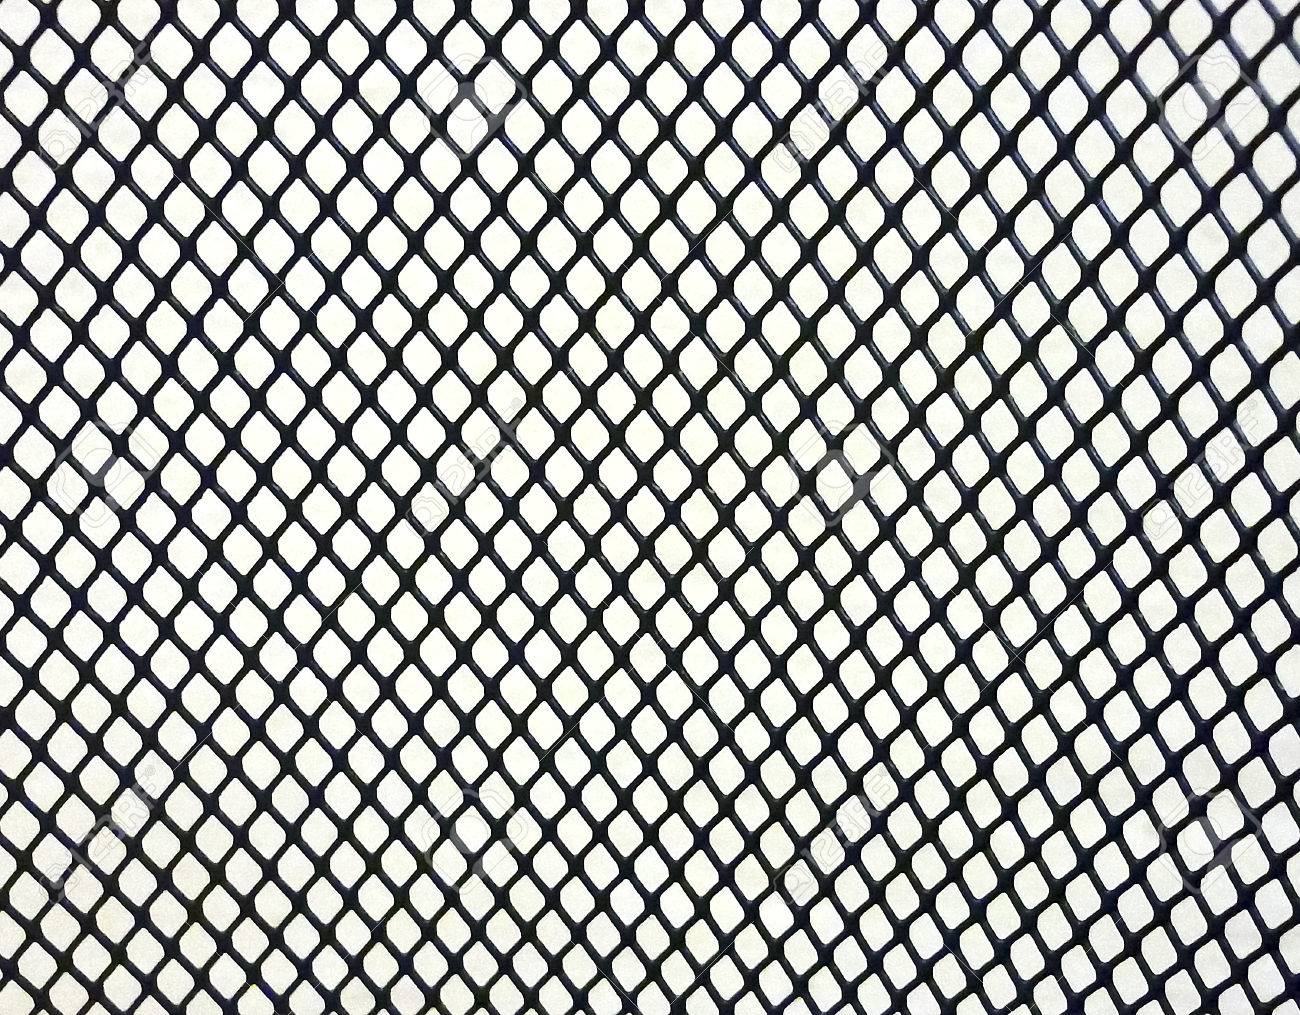 1300x1015 Grid Abstract Pattern Background In Black And White Tones. Stock